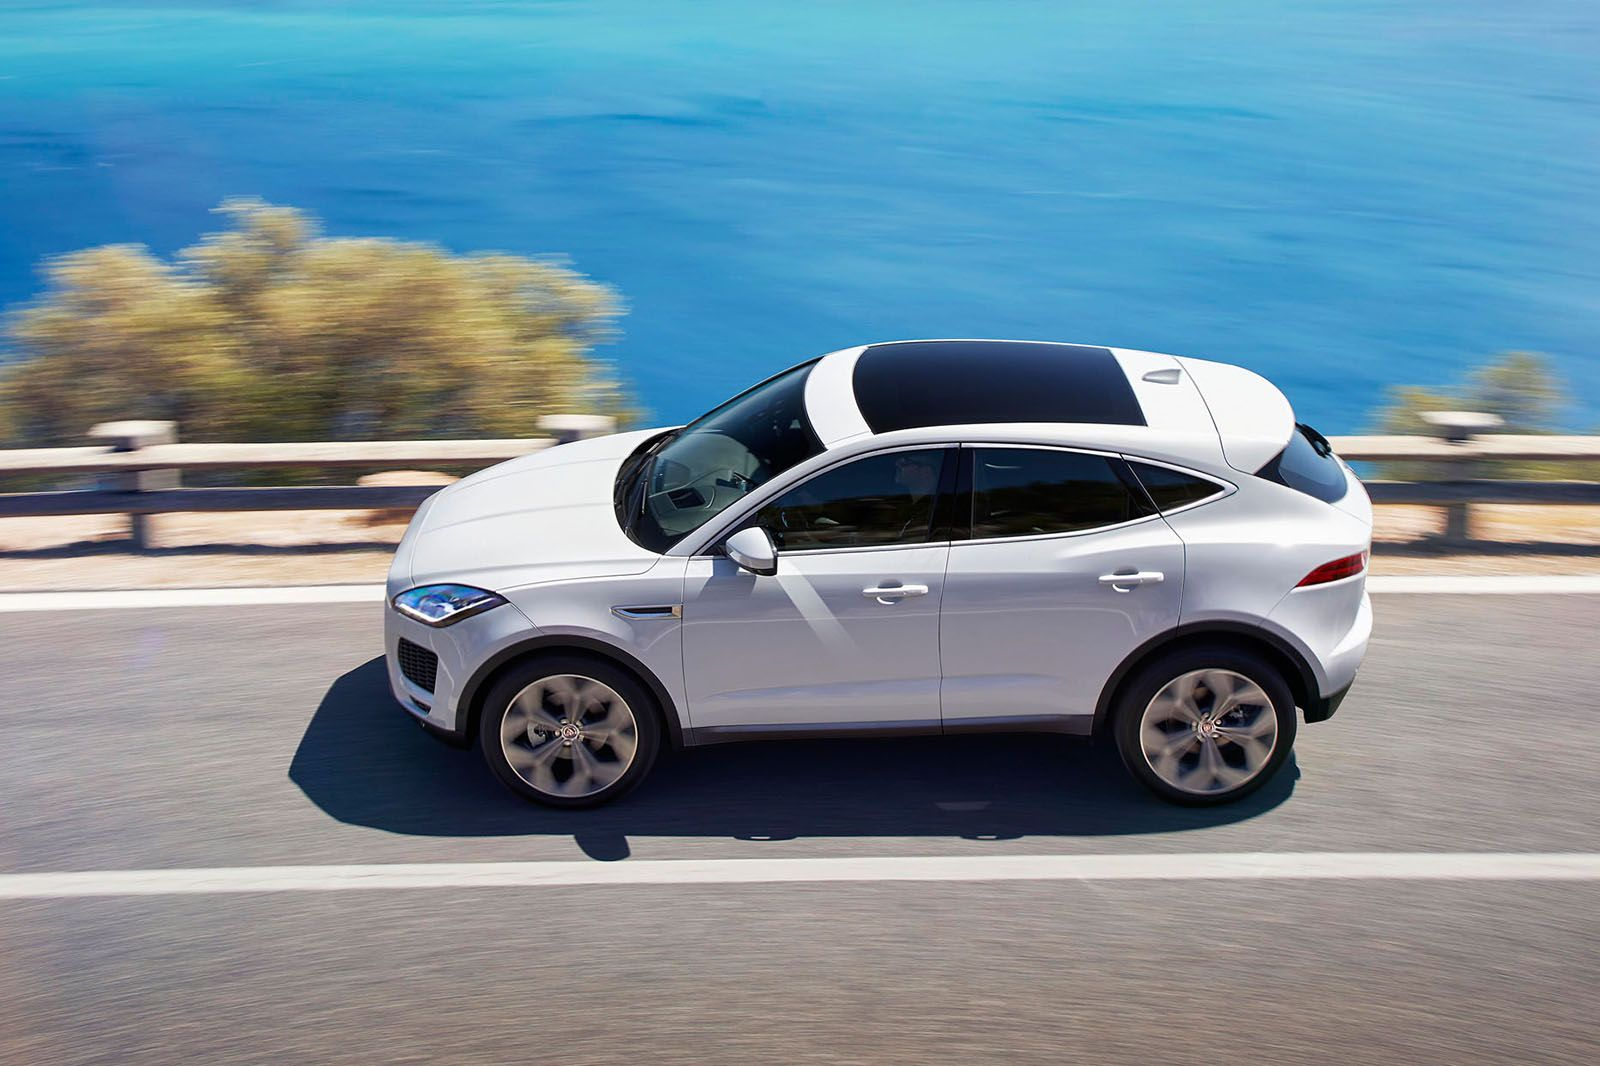 2018 Jaguar E Pace Officially Revealed: Release Date, Price And Interior |  Autocar